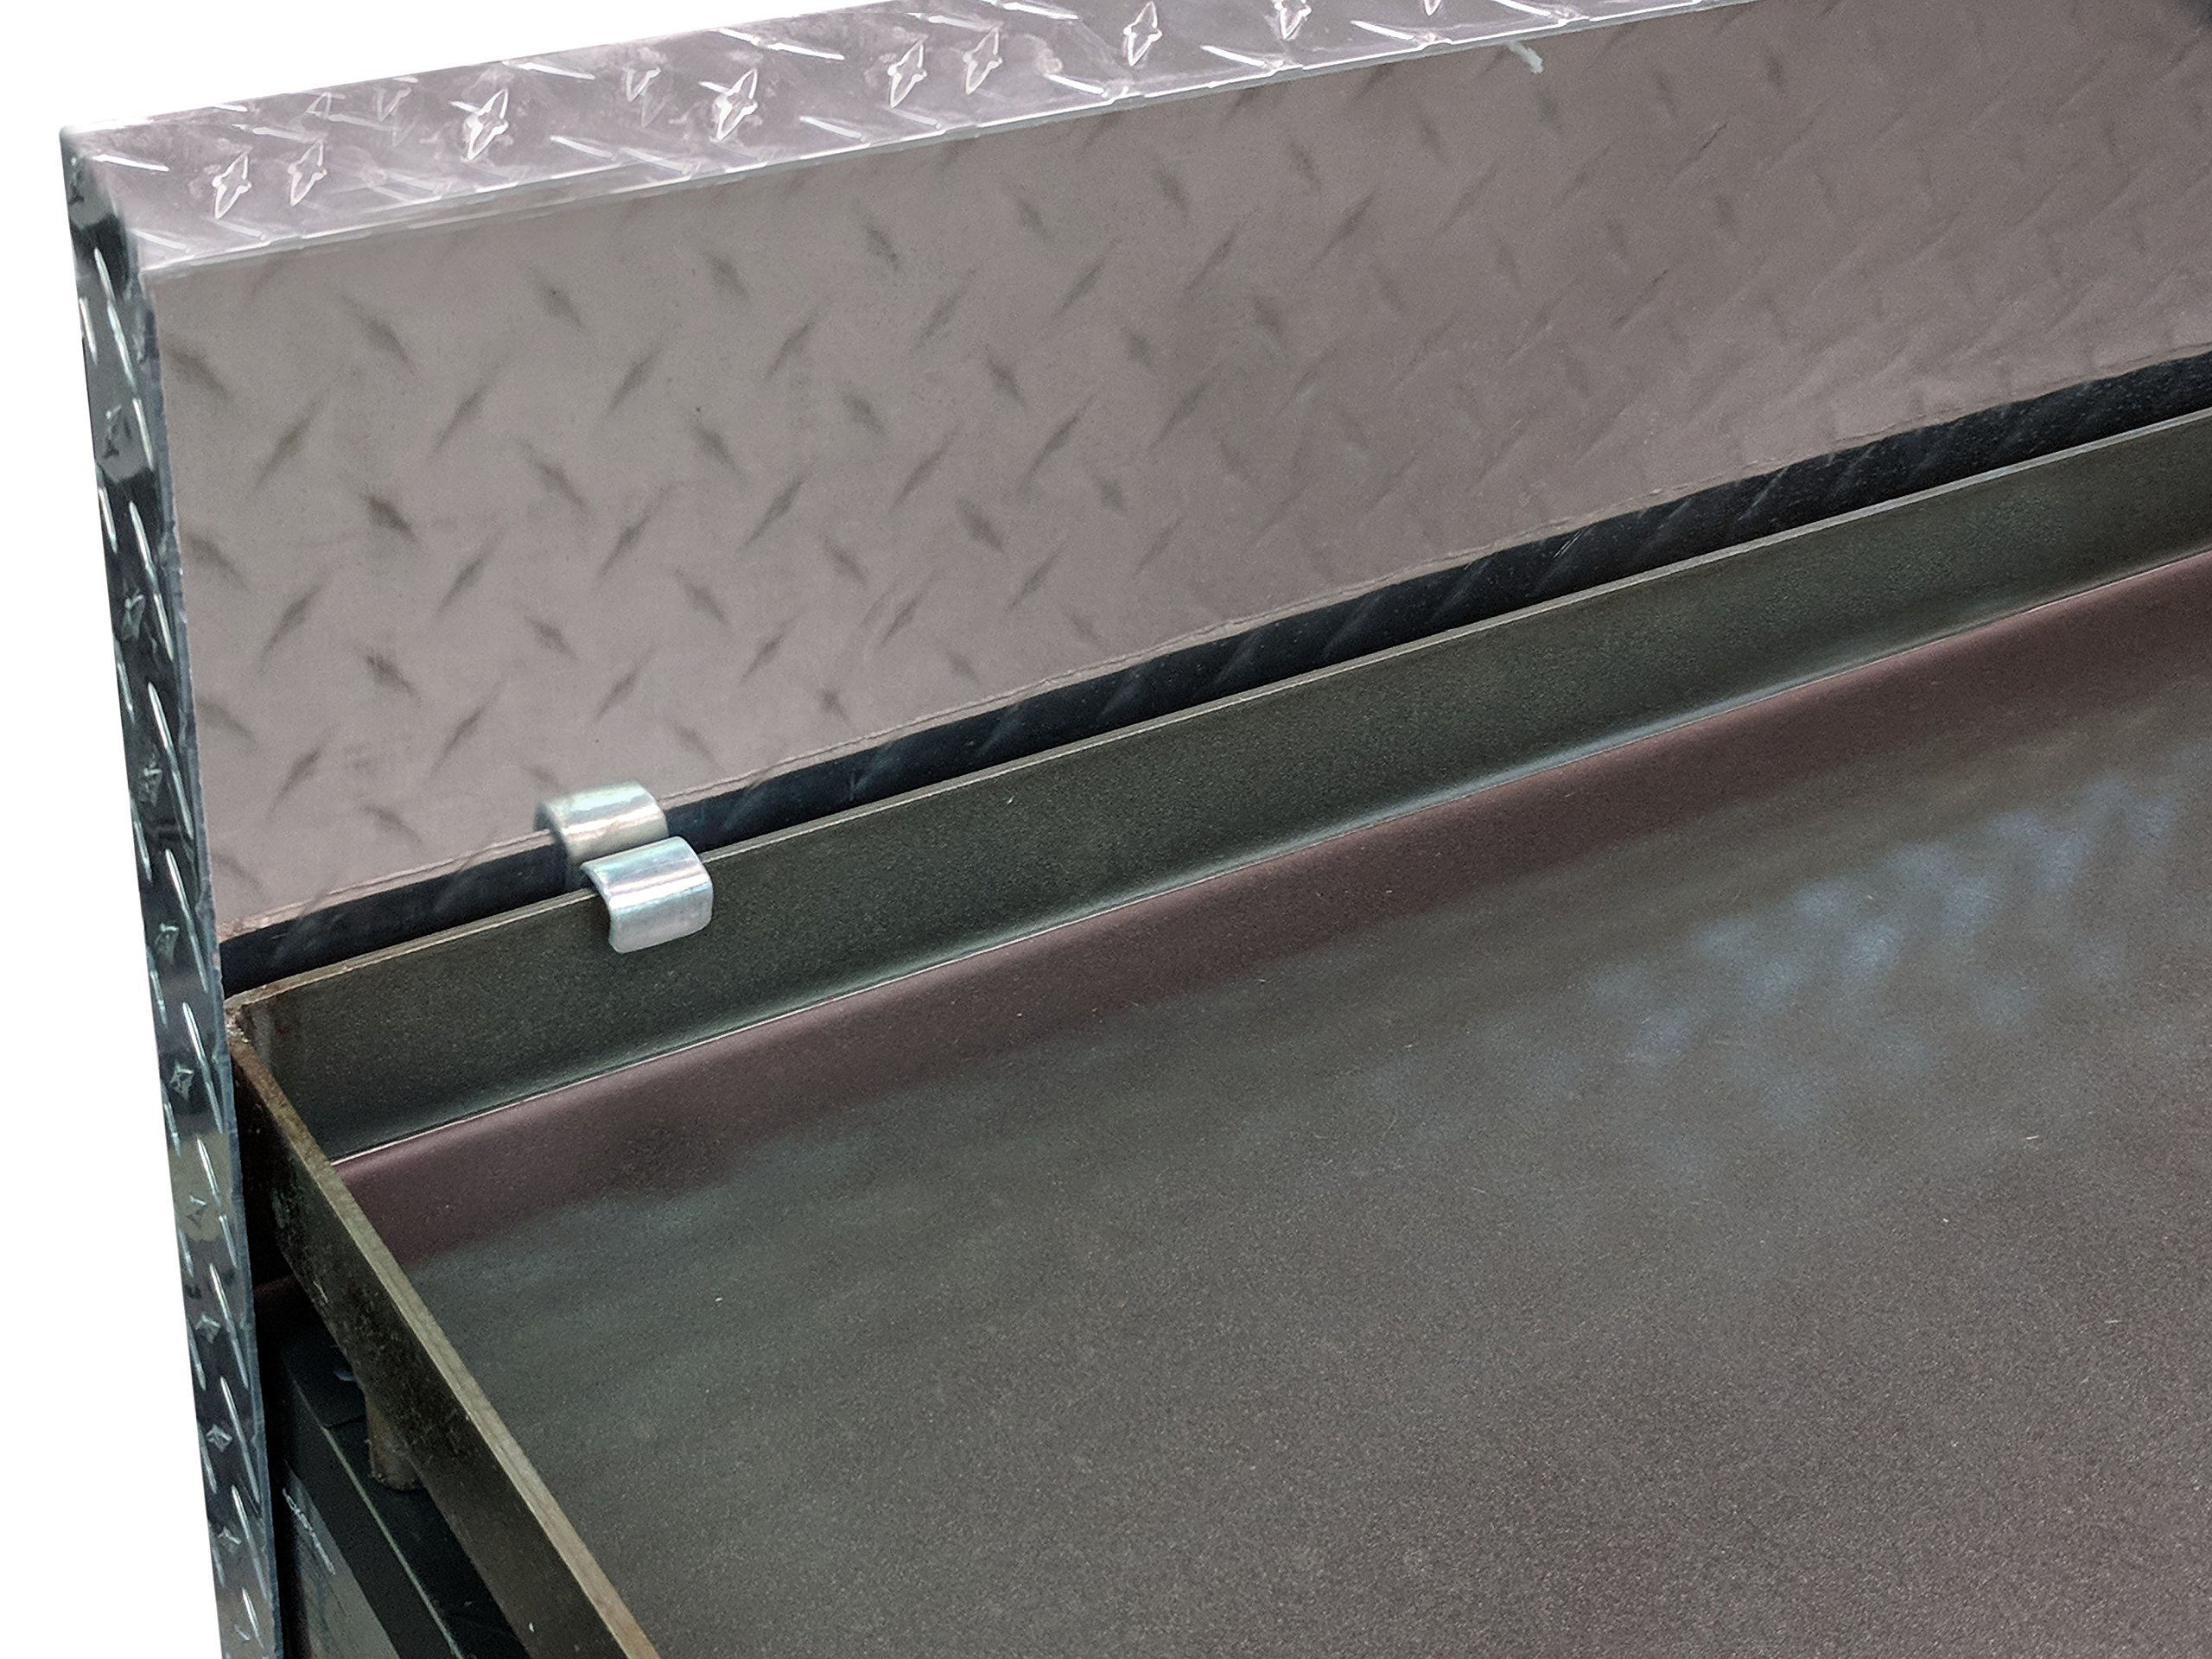 Titan Diamond Plated Aluminum Grill Cover Fits 36'' Blackstone Griddle by Titan Great Outdoors (Image #3)